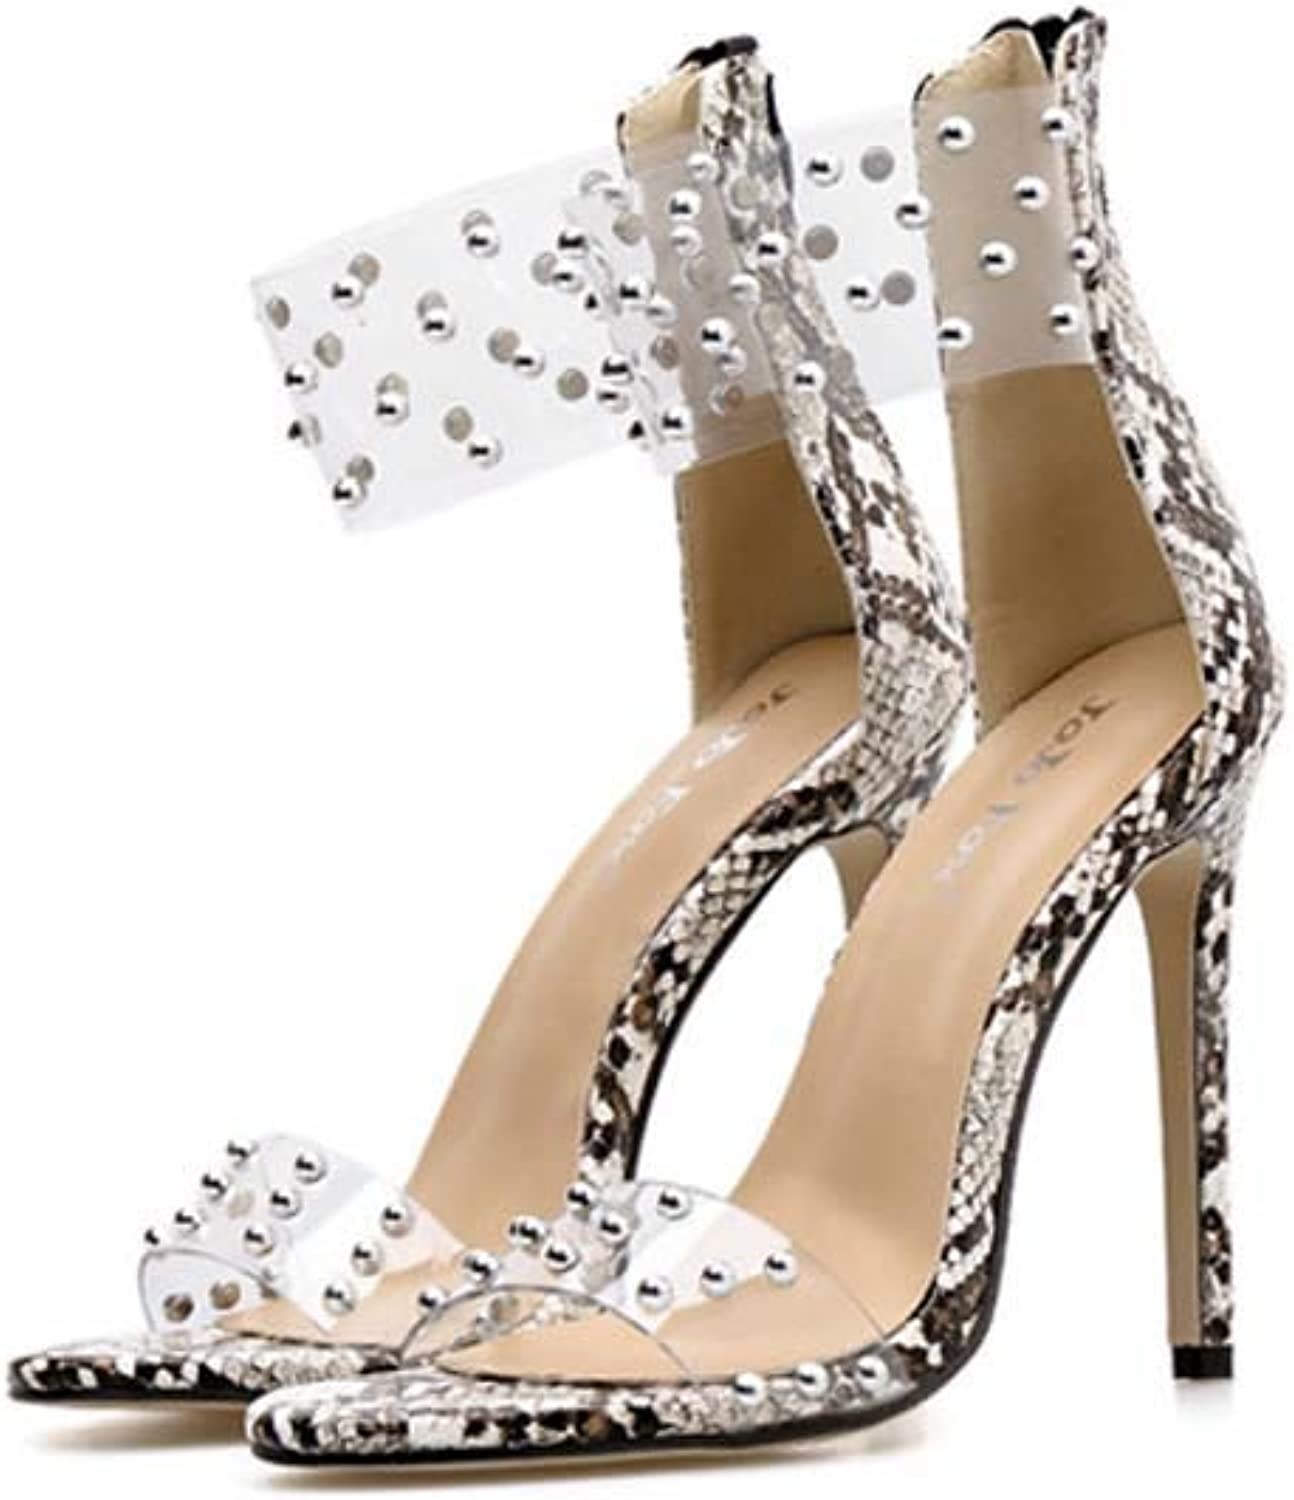 Women's Ankle Strap Shiny Sandals,Clear Sexy Open Toe Summer shoes Strappy High Chunky Heels with Rivets PVC high Heels